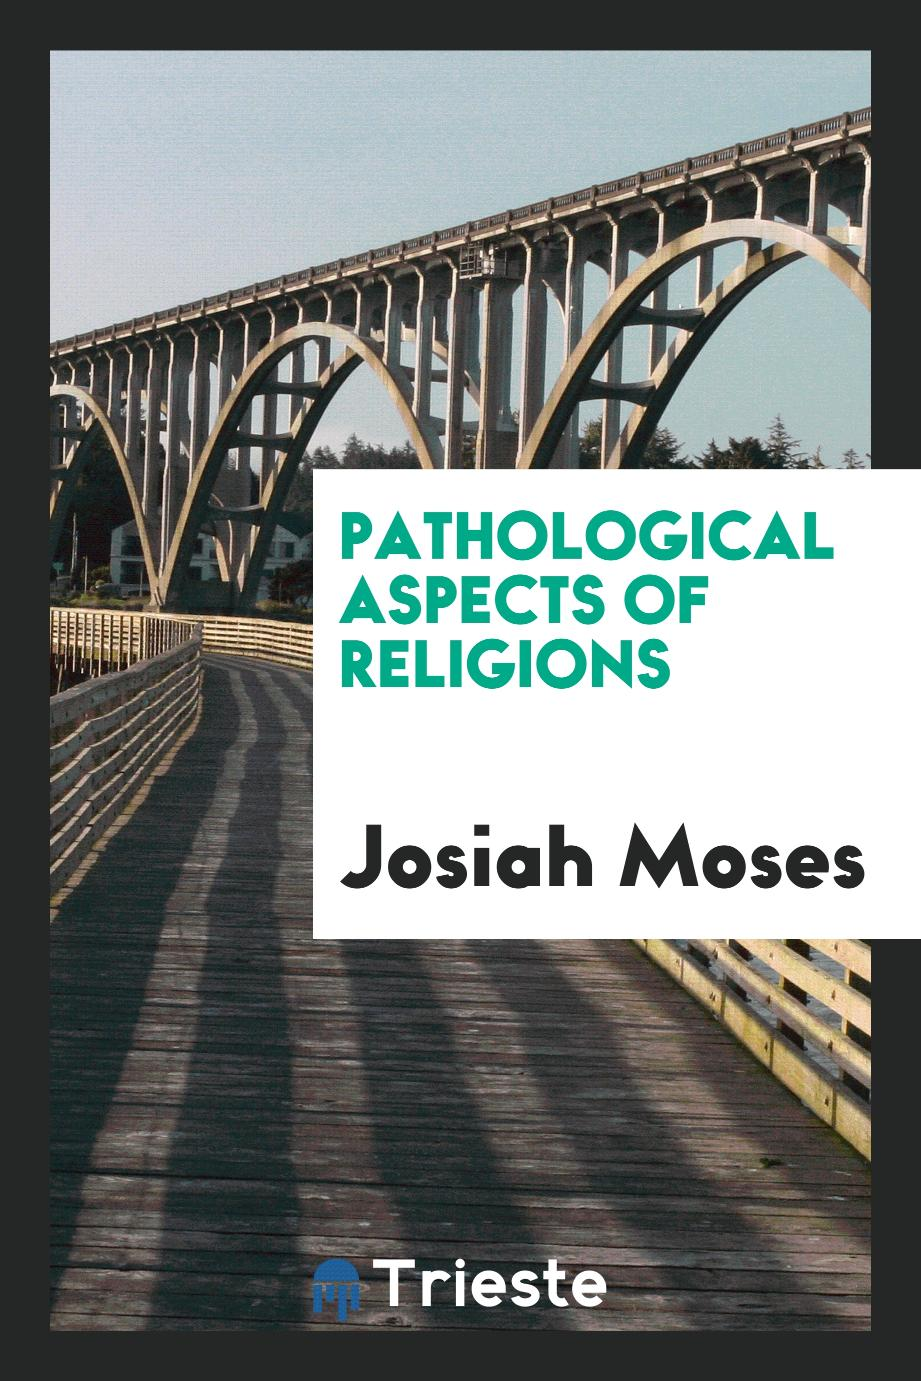 Pathological aspects of religions